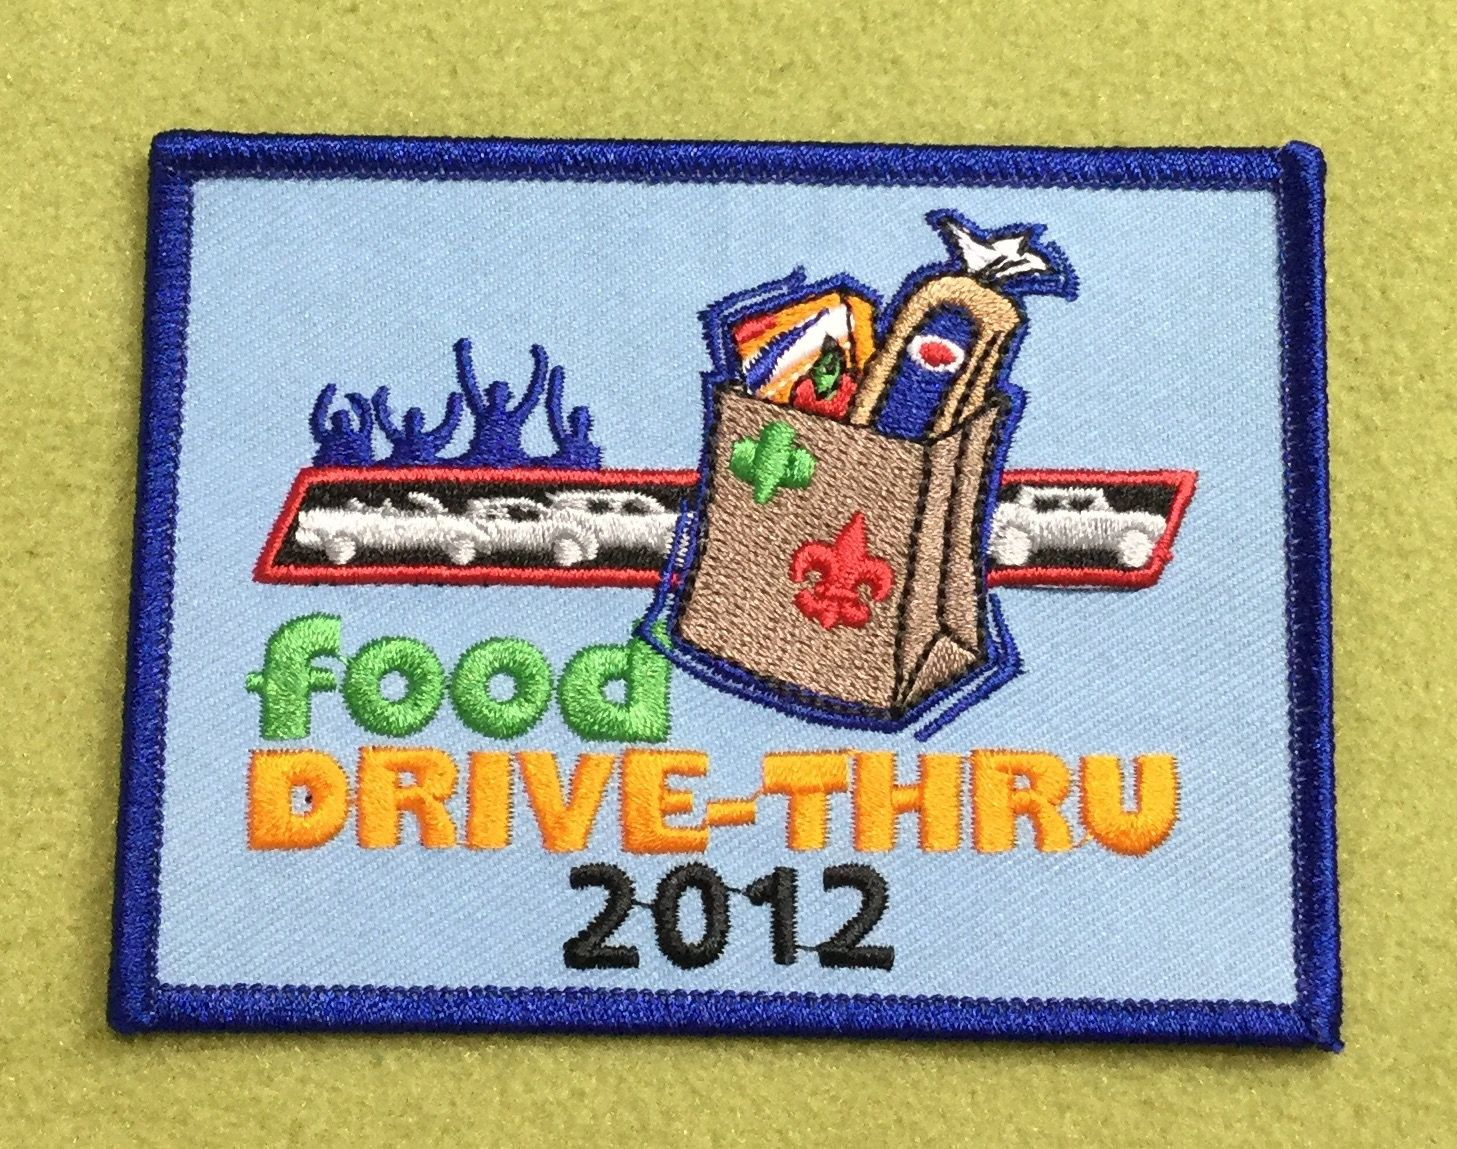 Girl Scout 100th anniversary year patch. Food drive-thru 2012. eBay find.